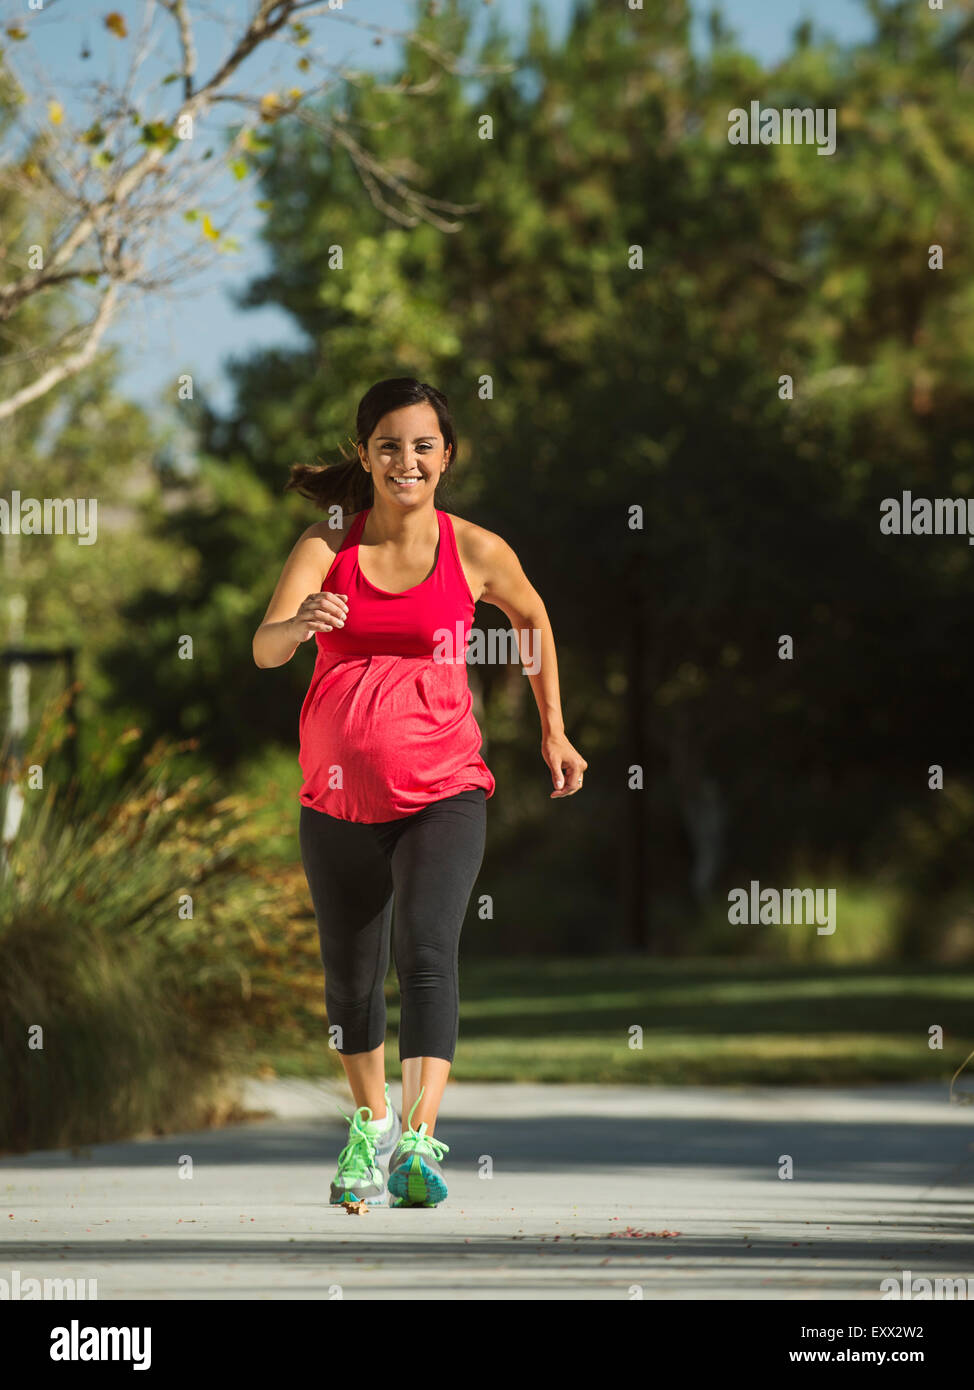 Pregnant woman running outdoors - Stock Image